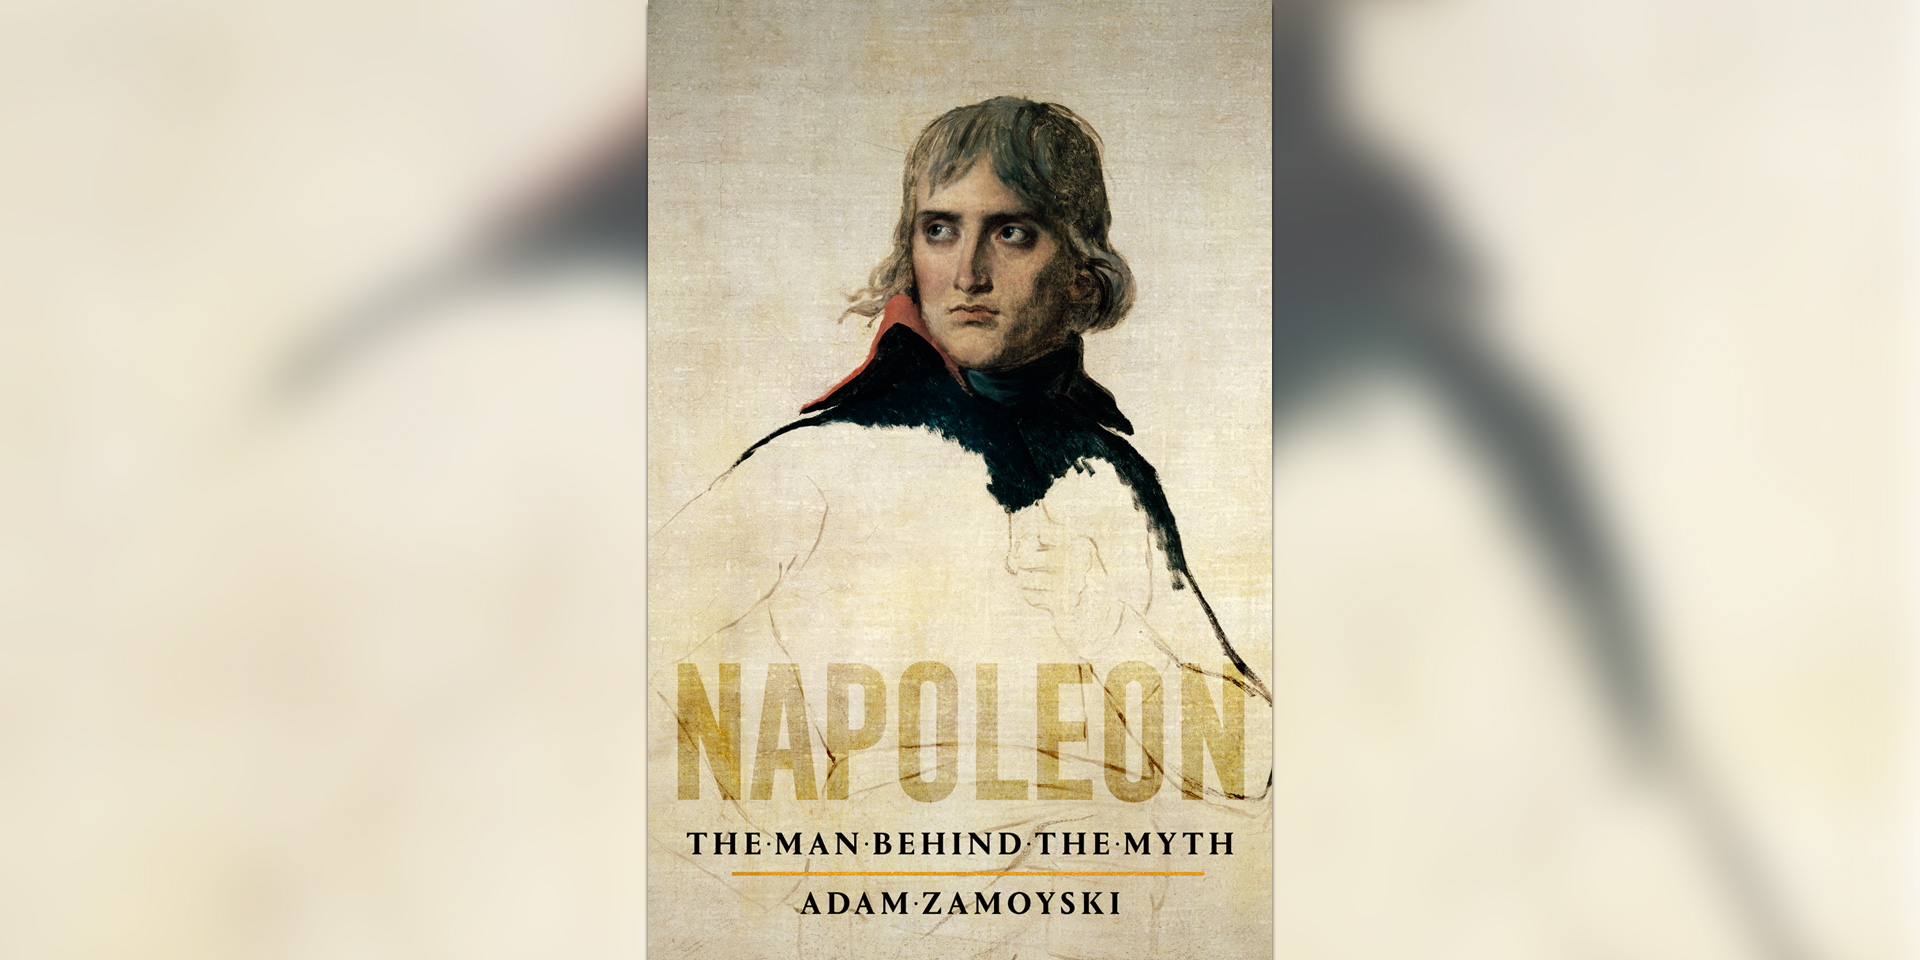 'Napoleon: The Man Behind the Myth' book cover